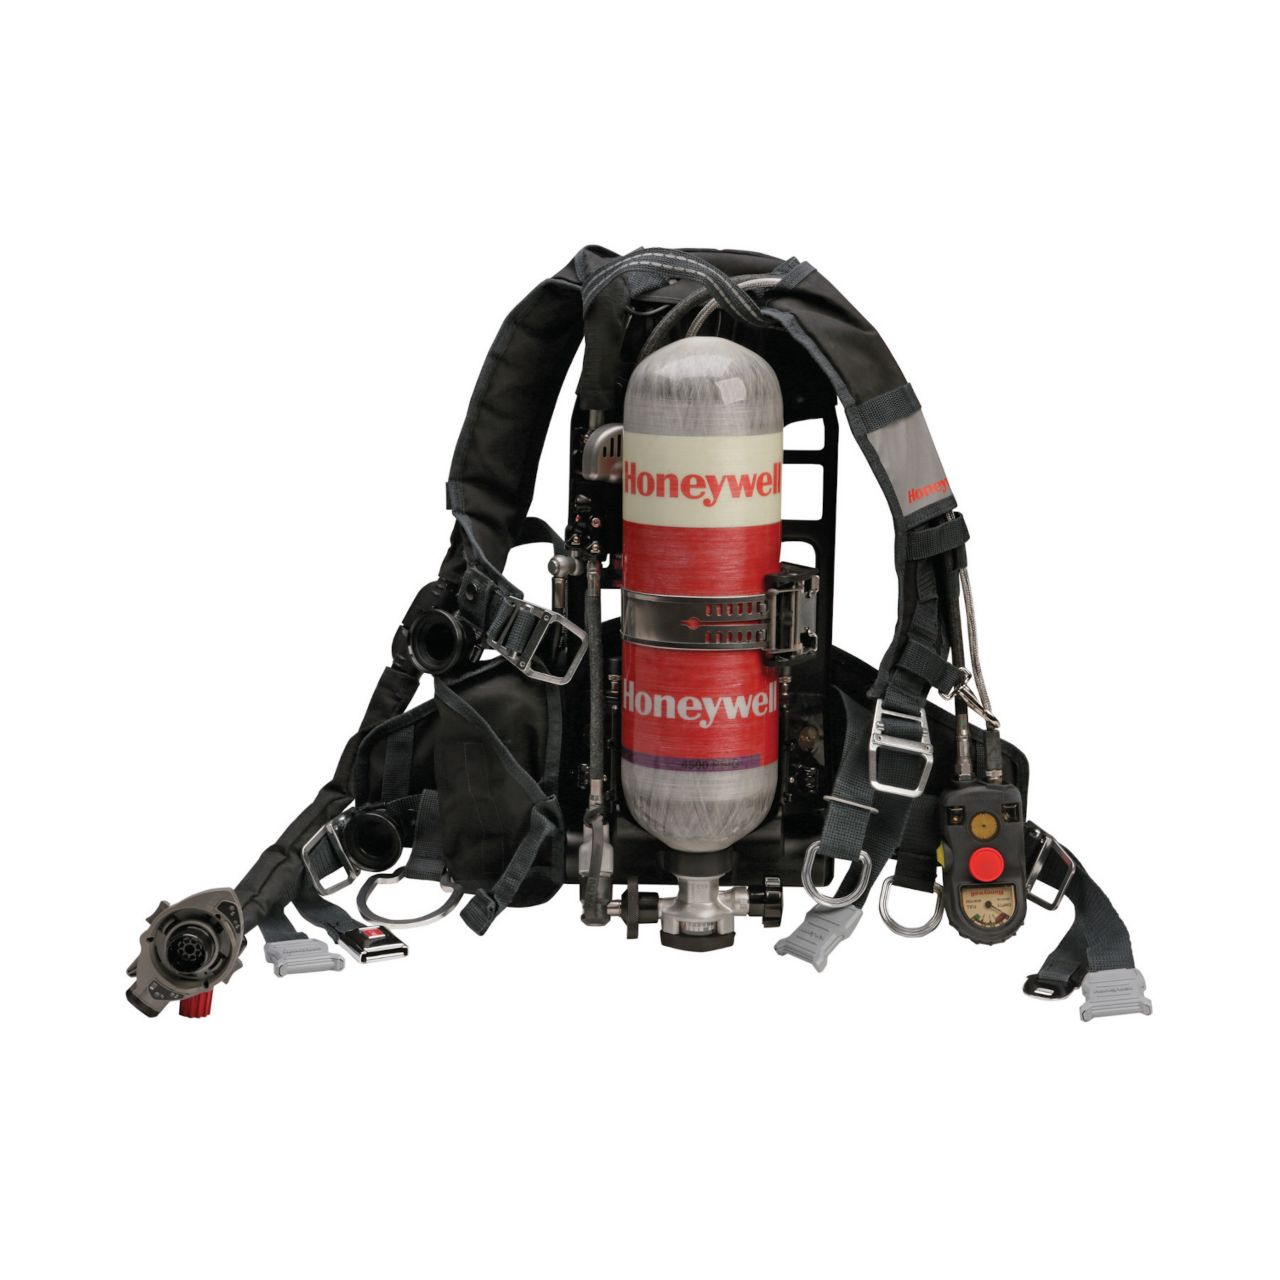 hs_honeywell_titan_scba_product_image_a